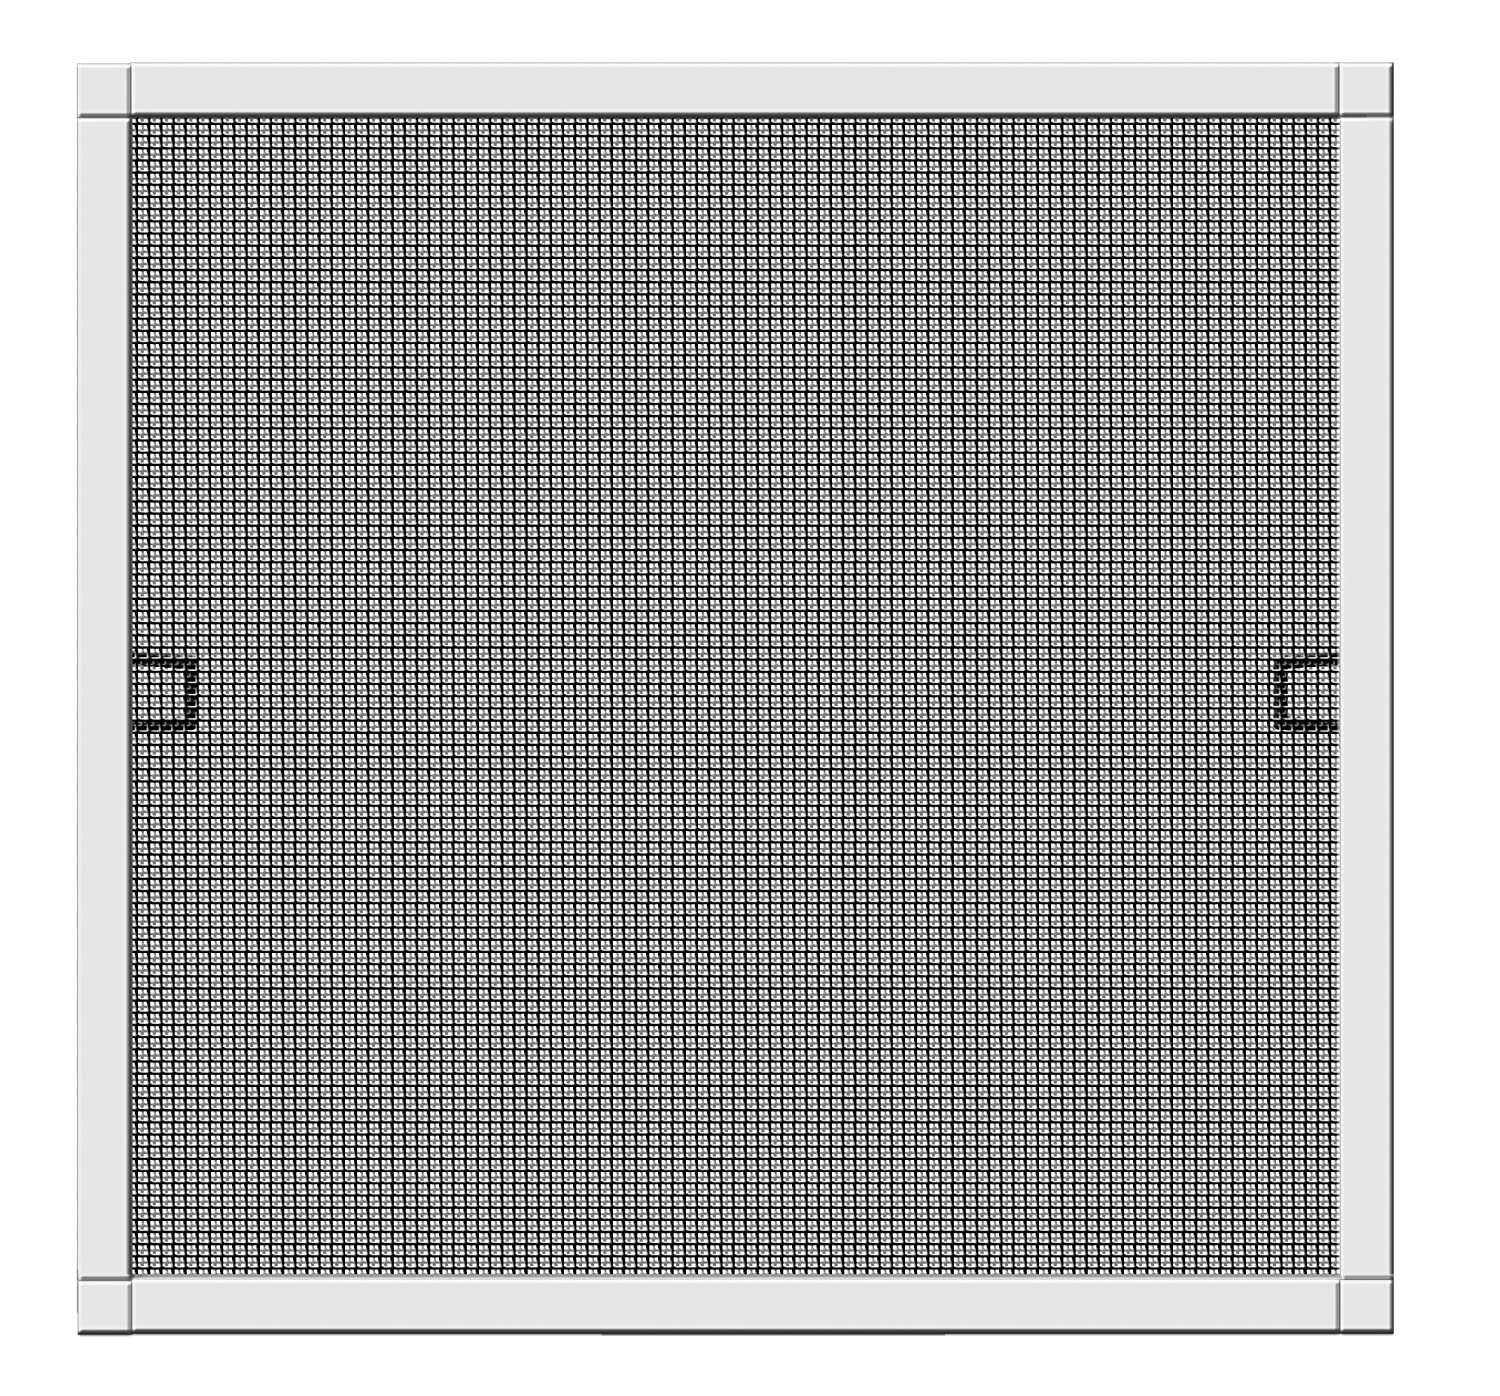 Schellenberg 70032  Plus Insect Protection Window Fly Screen with Frame  –   130  x 150  cm, White Color, 1  Piece 1 Piece